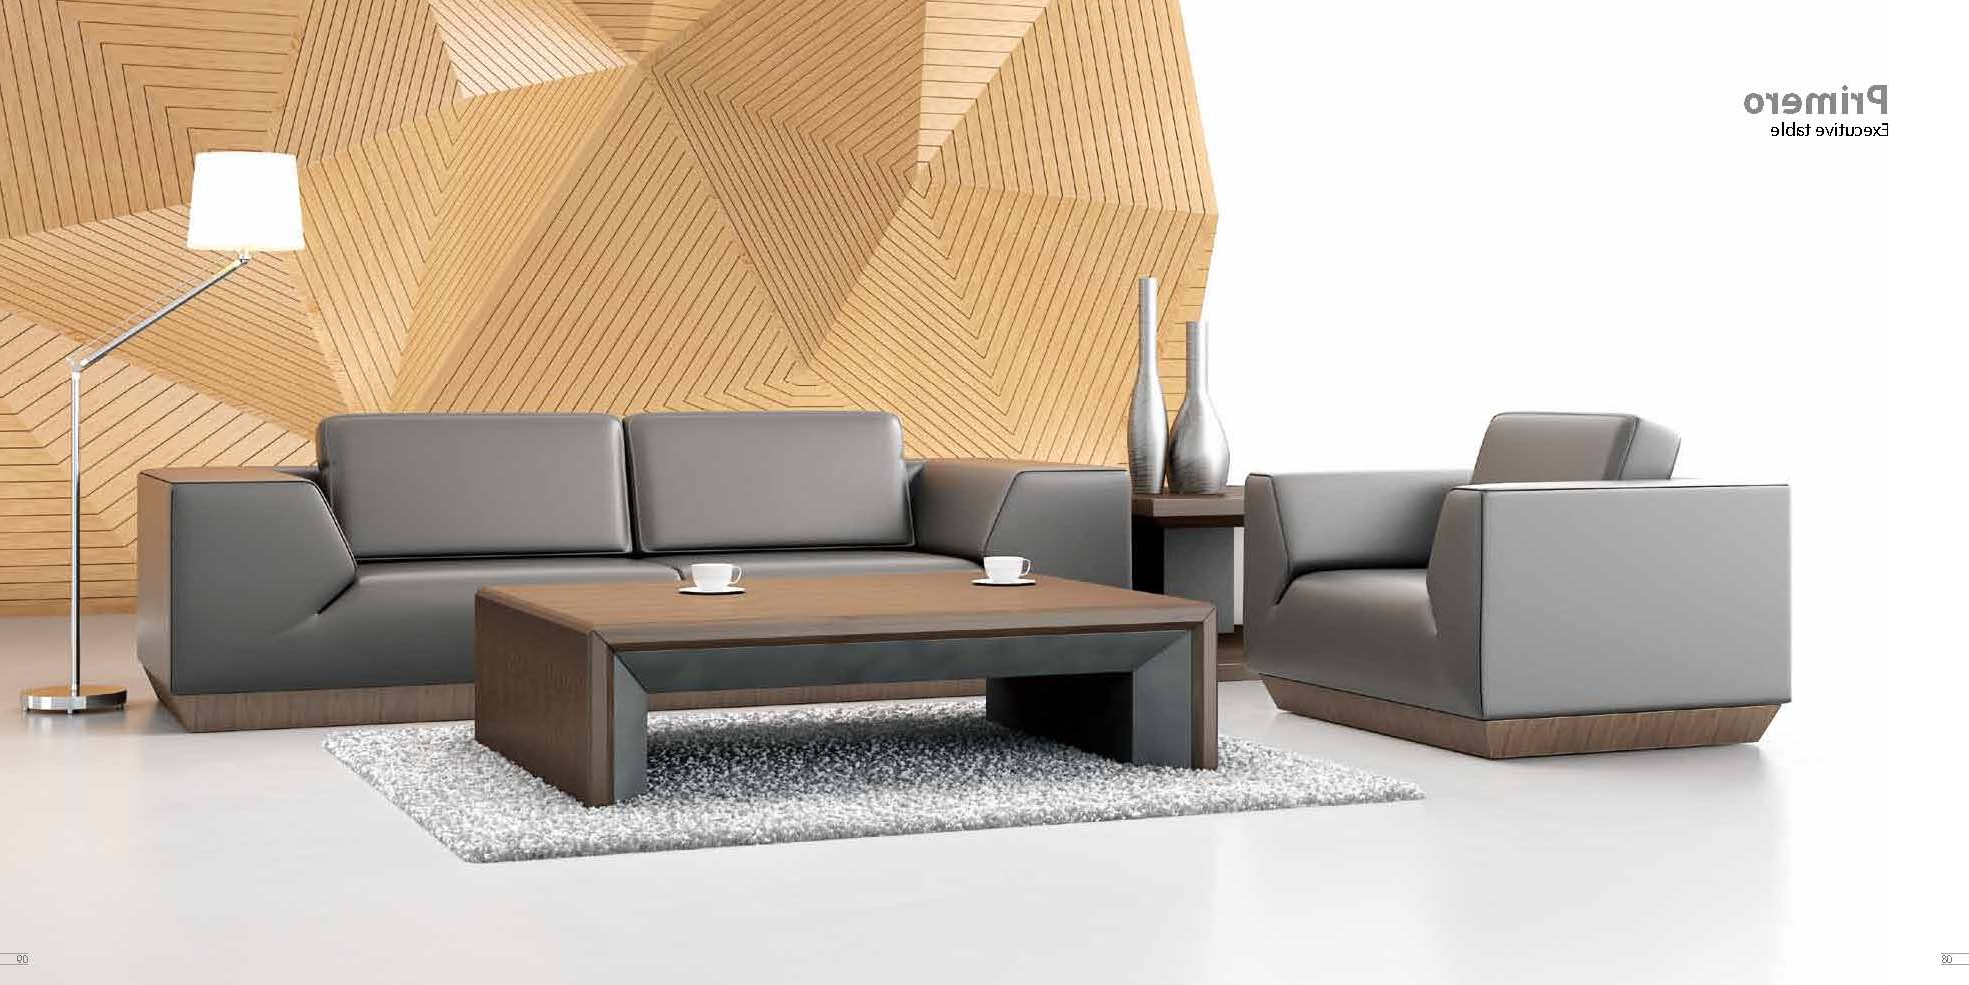 Office Sofa Chairs Regarding Most Recently Released Awesome Sofas And Chairs 21 Office Sofa Ideas With Sofas And Chairs (View 12 of 20)